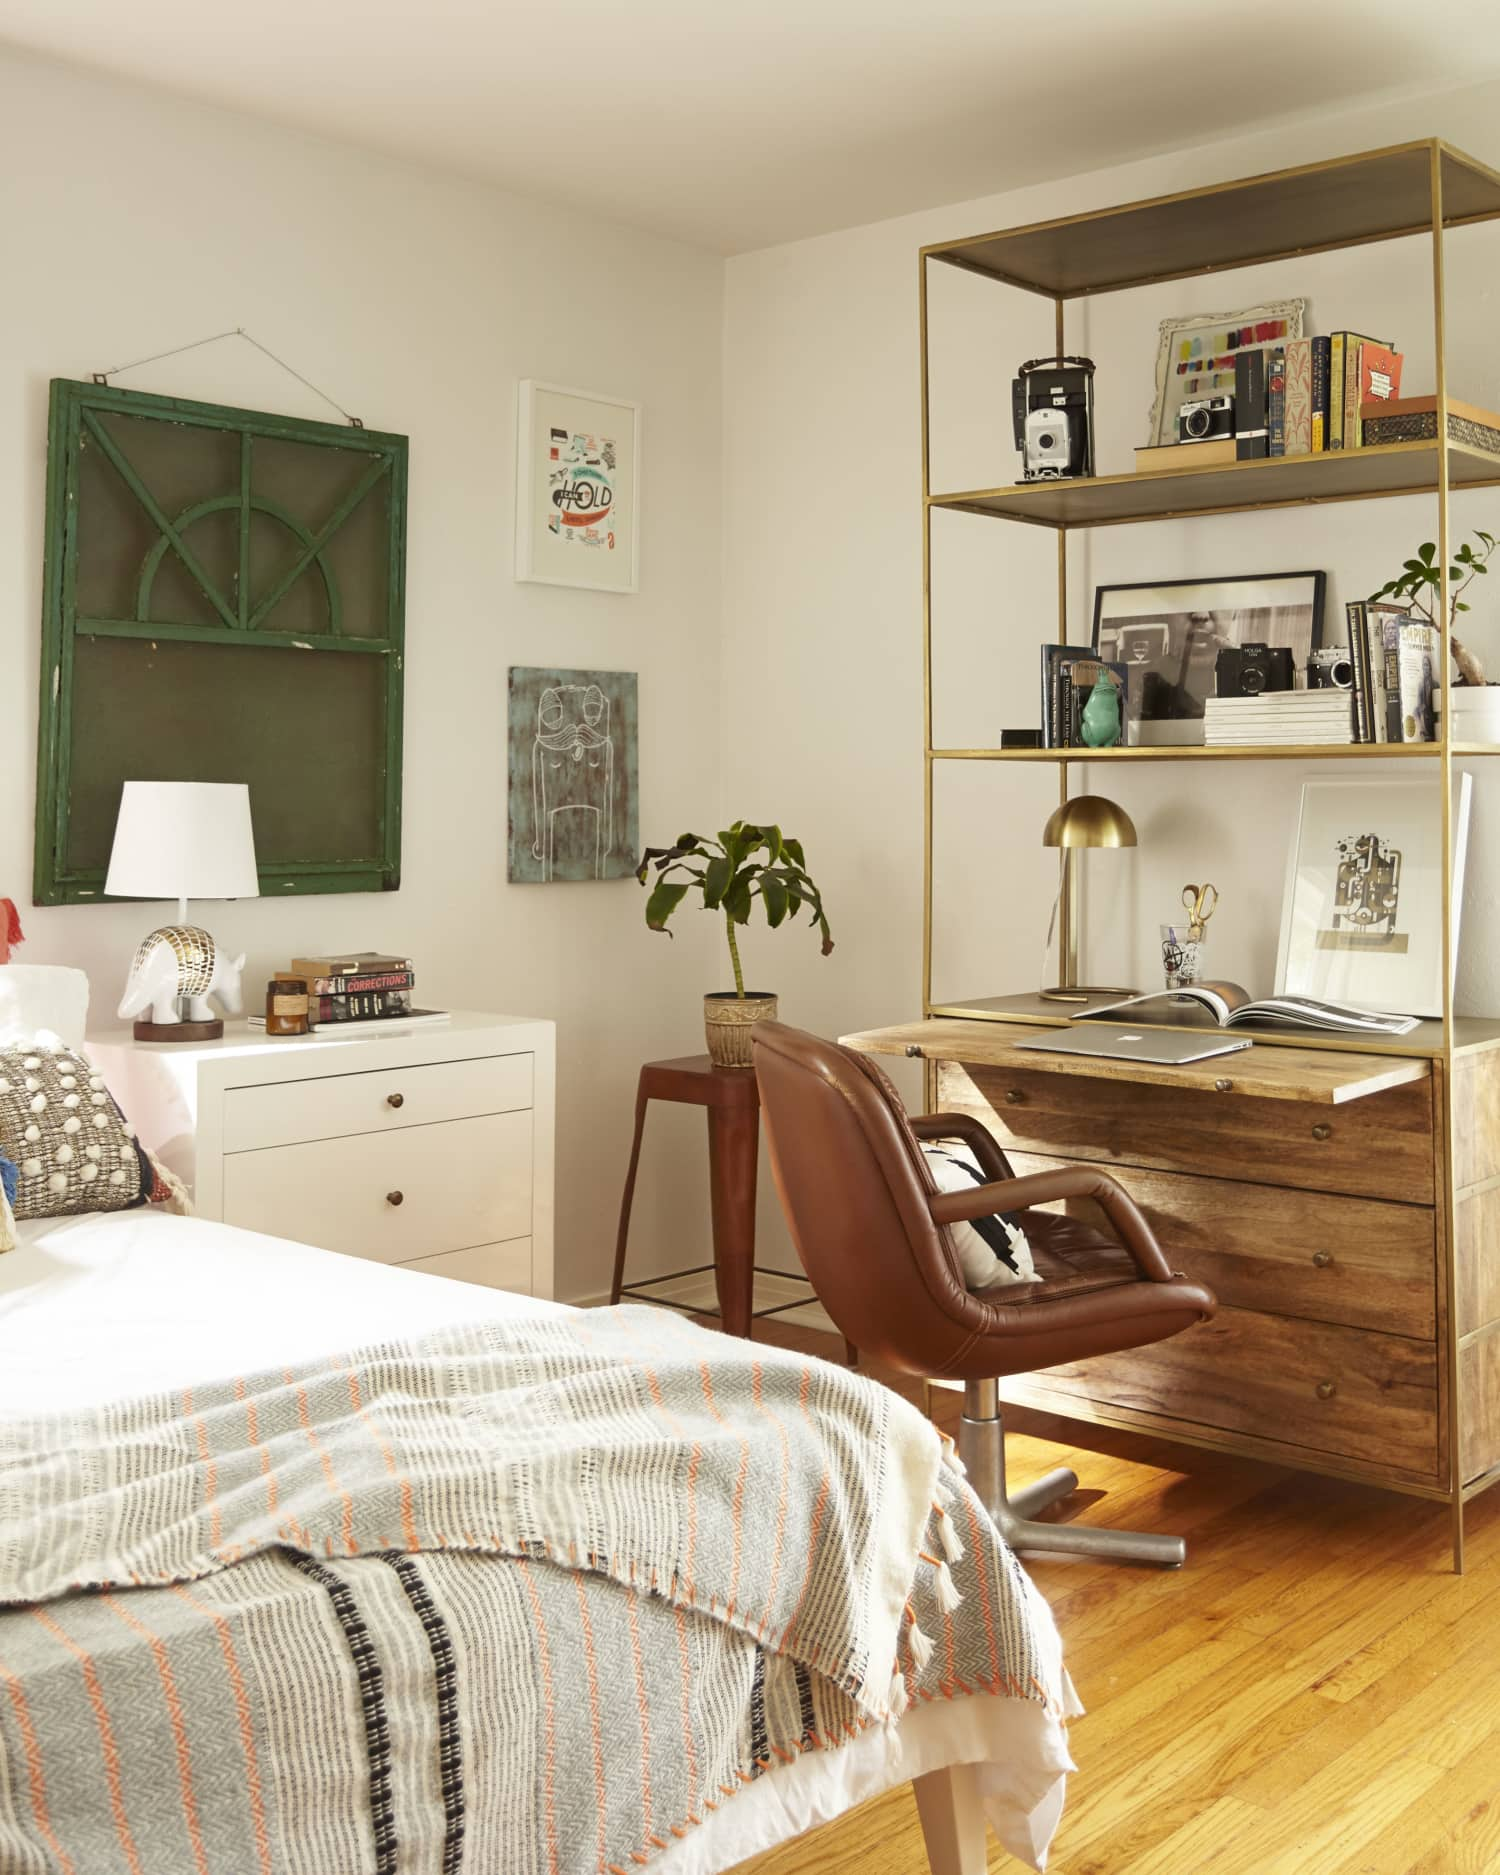 Get the Look: A Texture-Rich Blend of Bohemian & Mid-Century Styles